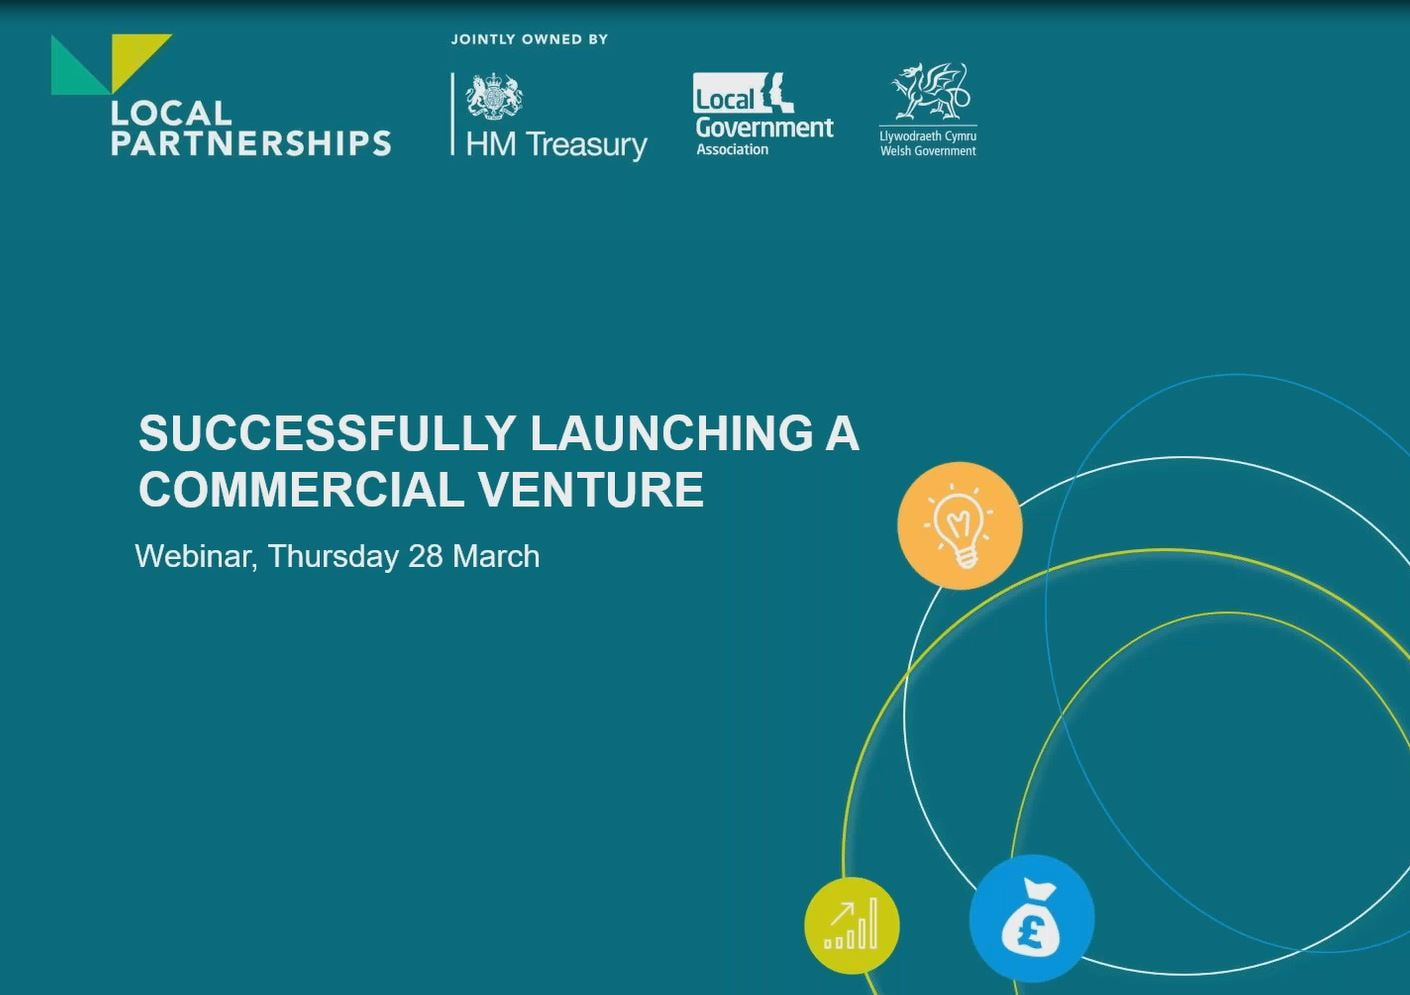 WEBINAR: Successfully launching a commercial venture